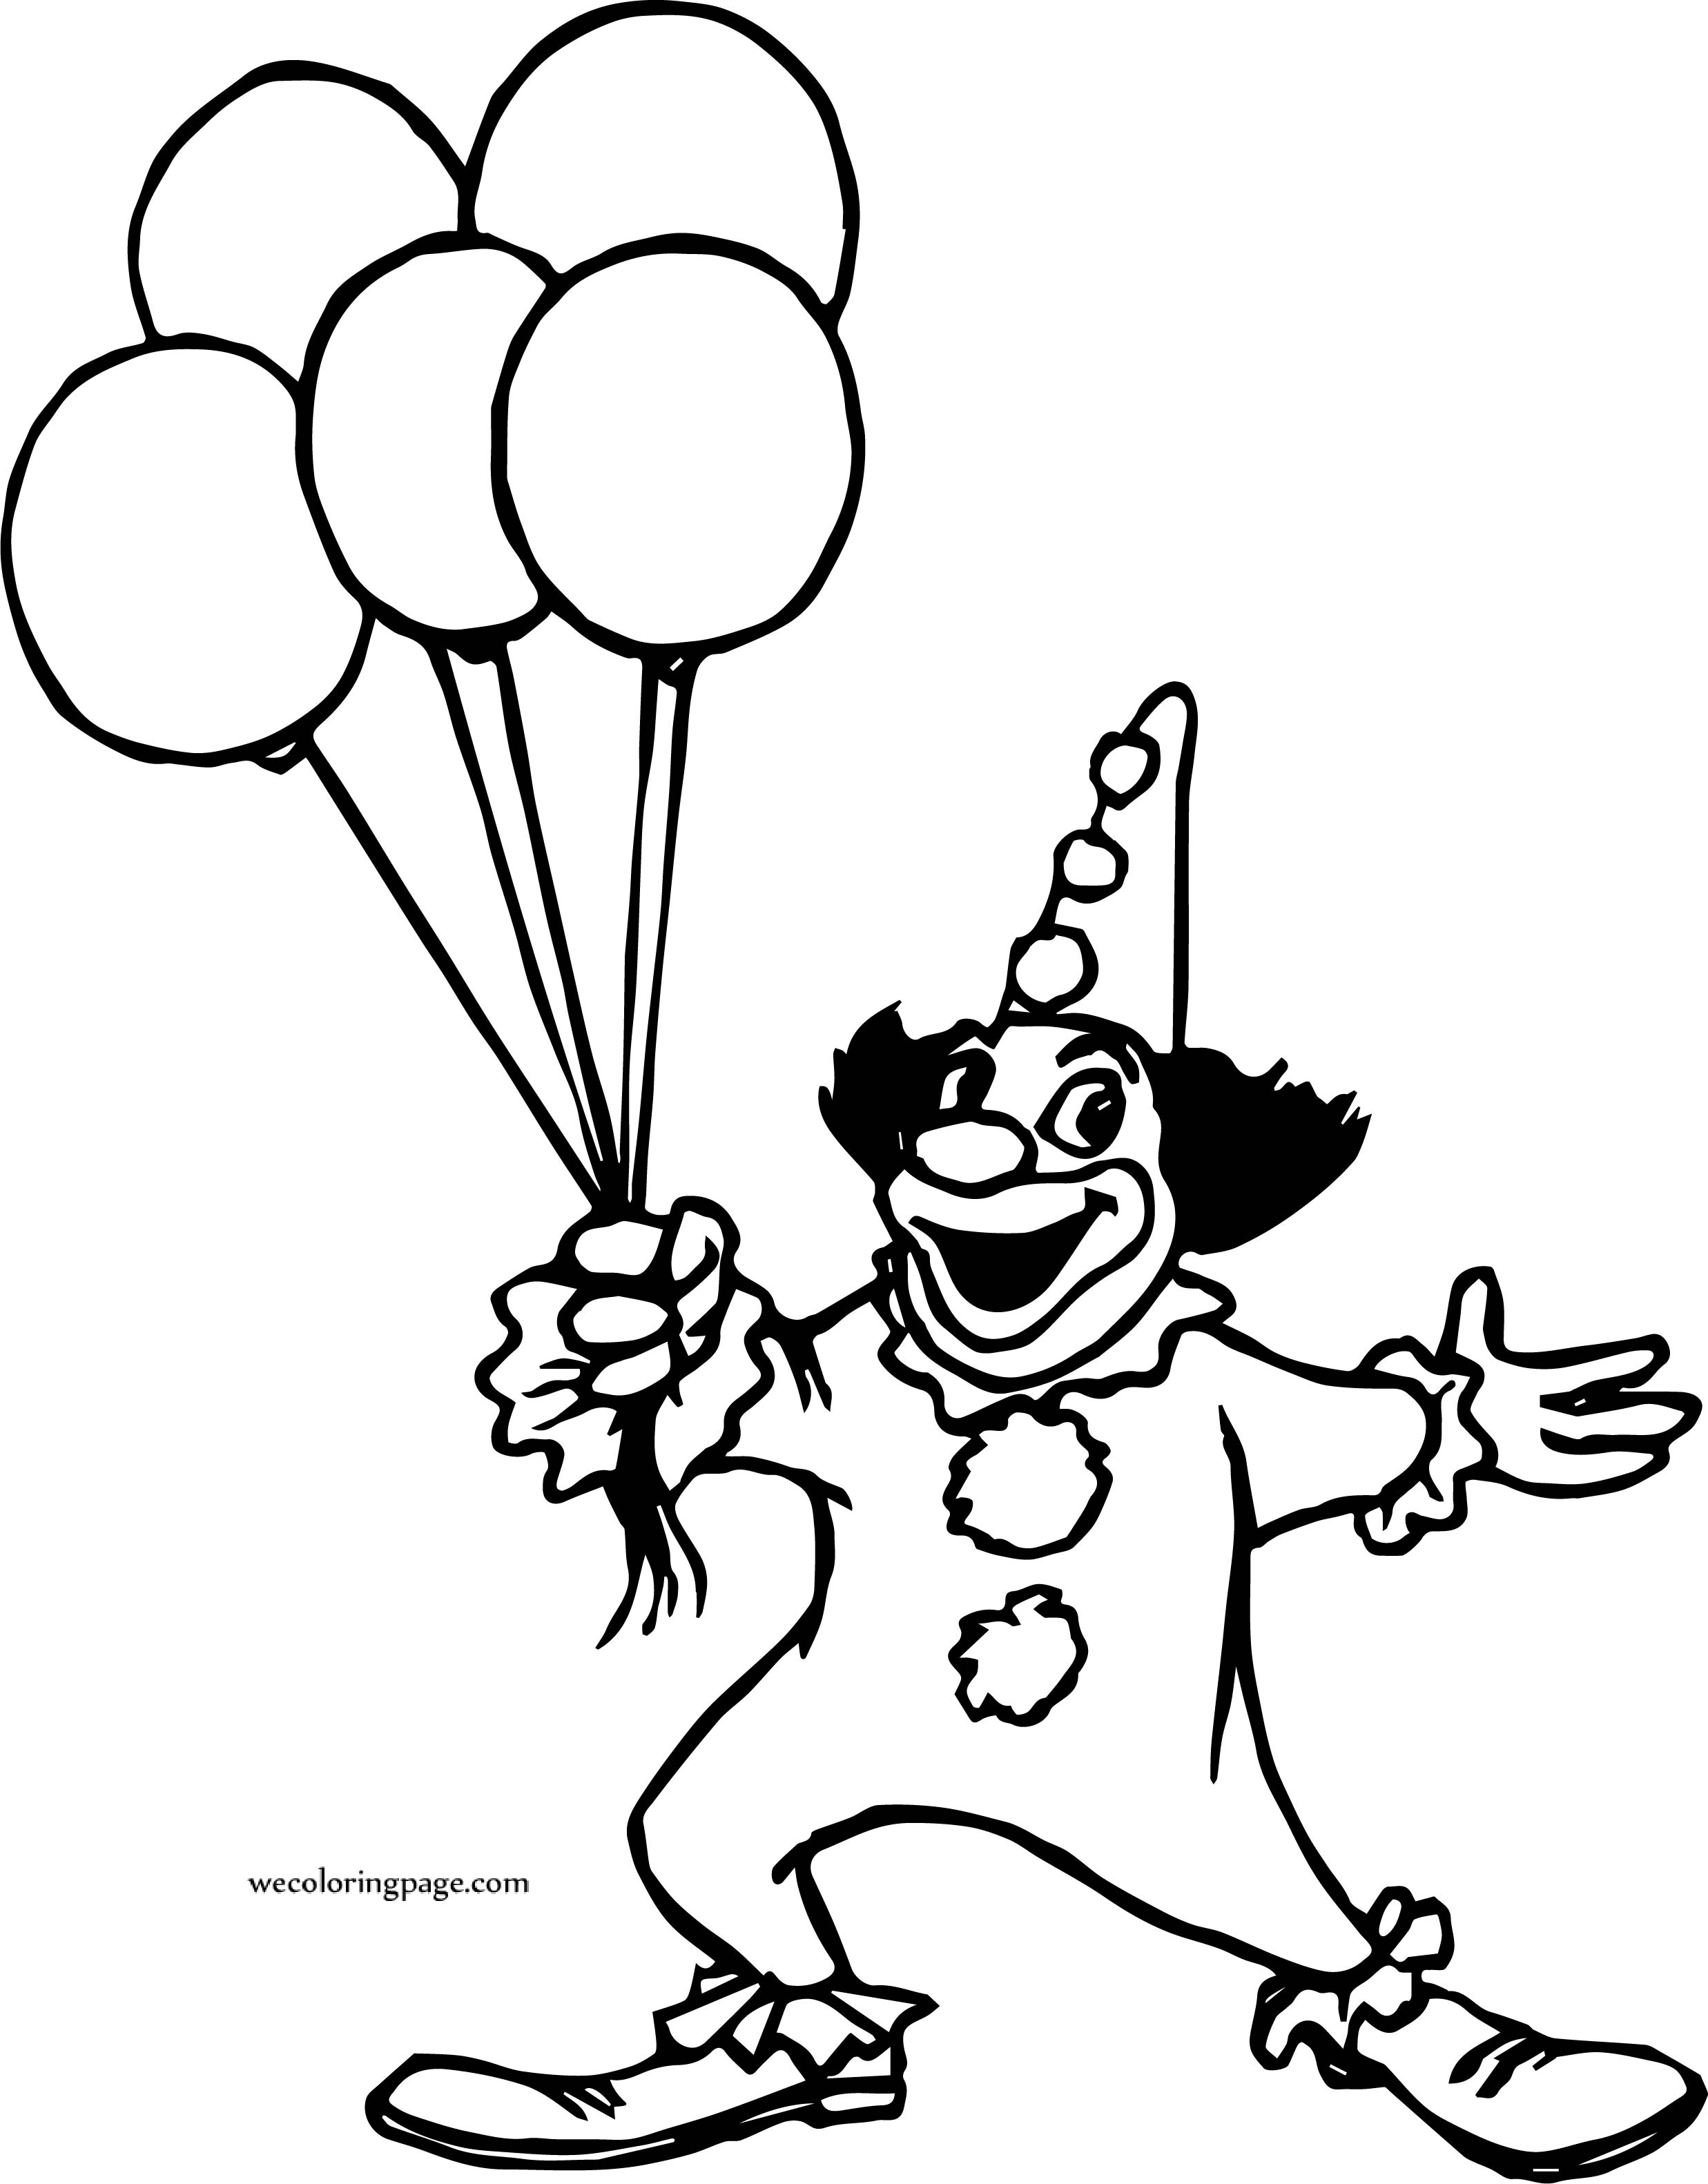 Balloon Horse Coloring Pages | www.bilderbeste.com